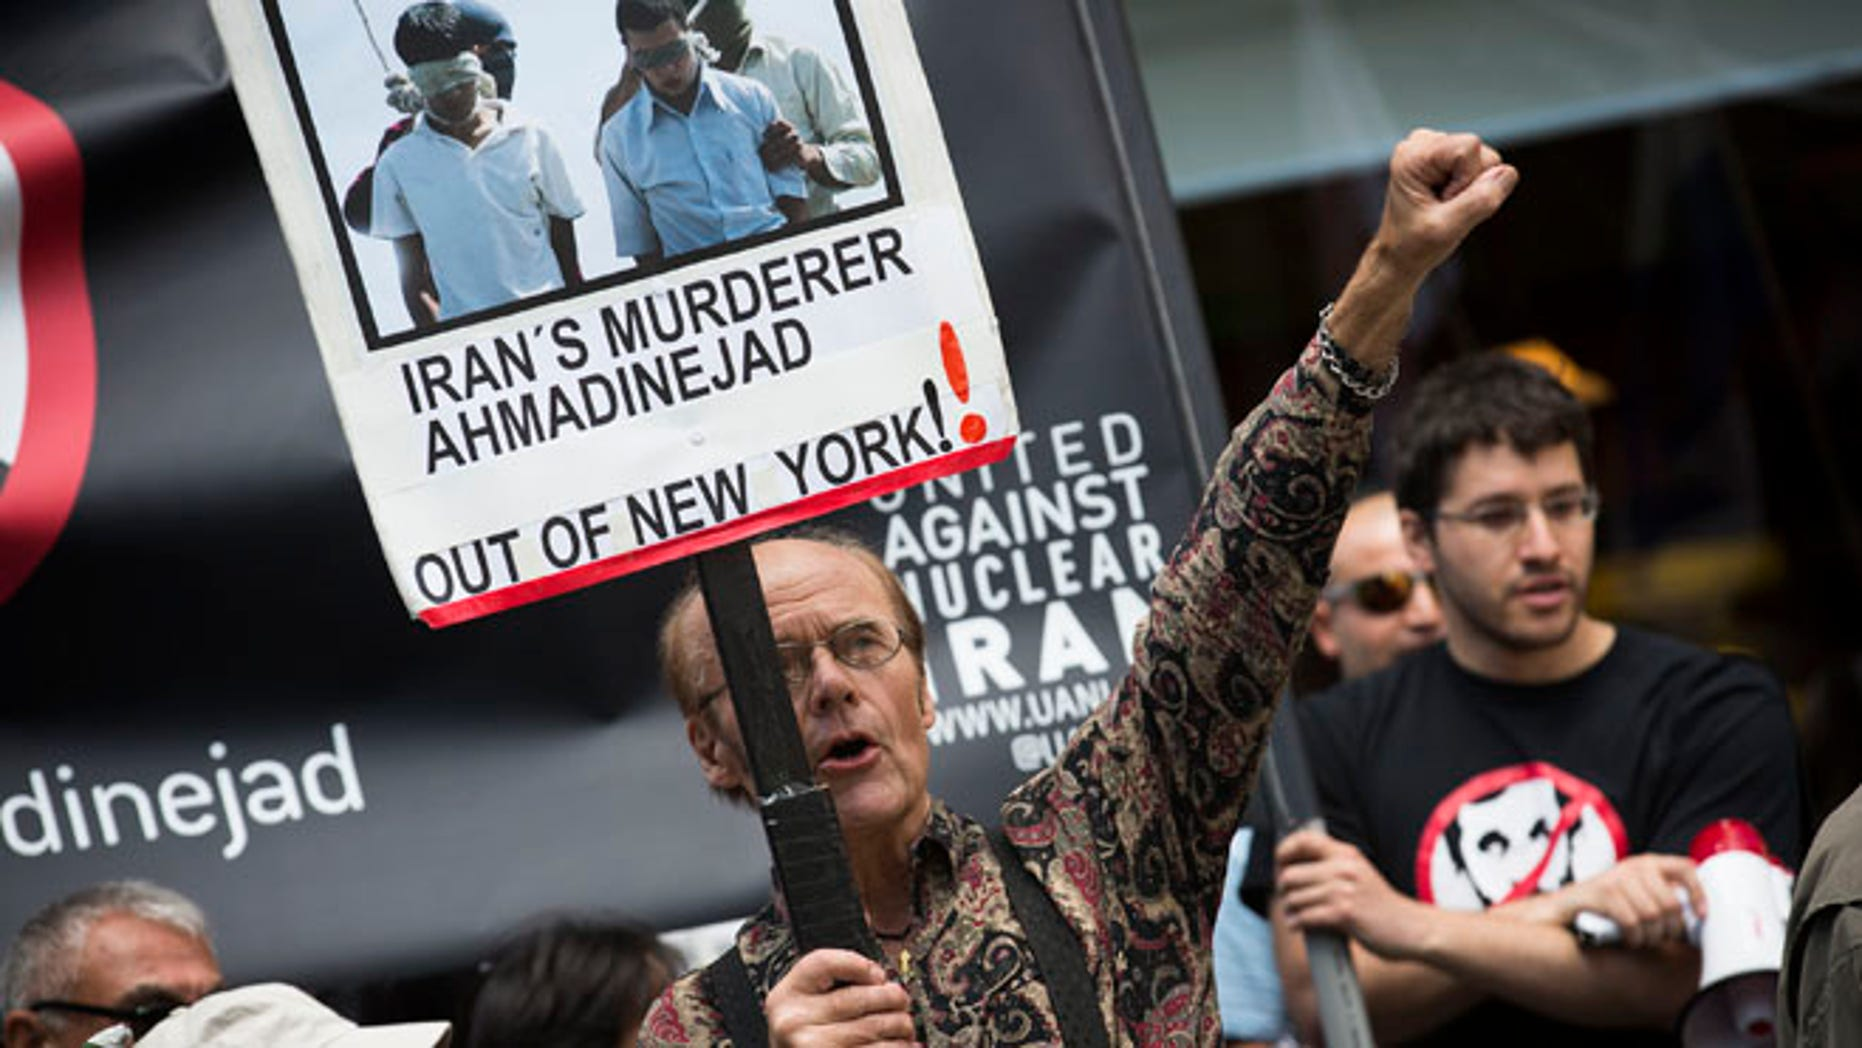 Sept. 24, 2012: Osborn Holmstrand of Sweden, chants during an anti-Mahmoud Ahmadinejad protest near the Warwick hotel in New York.